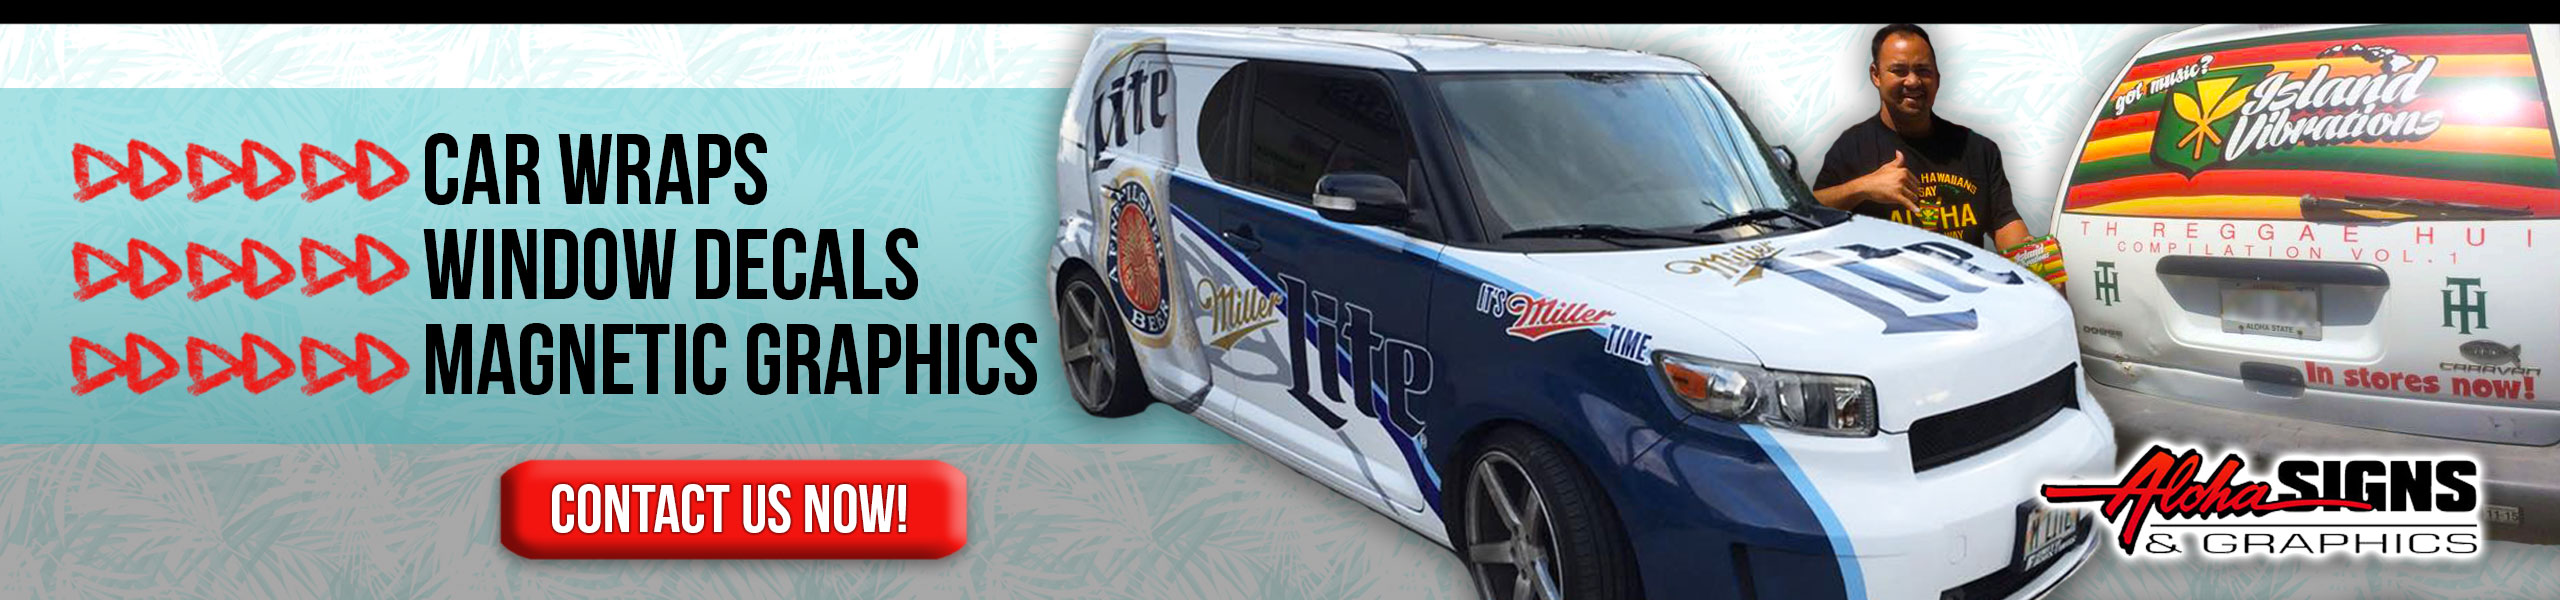 Aloha Signs & Graphics- Car Wraps, Car Decals, Magnetic Car Signs